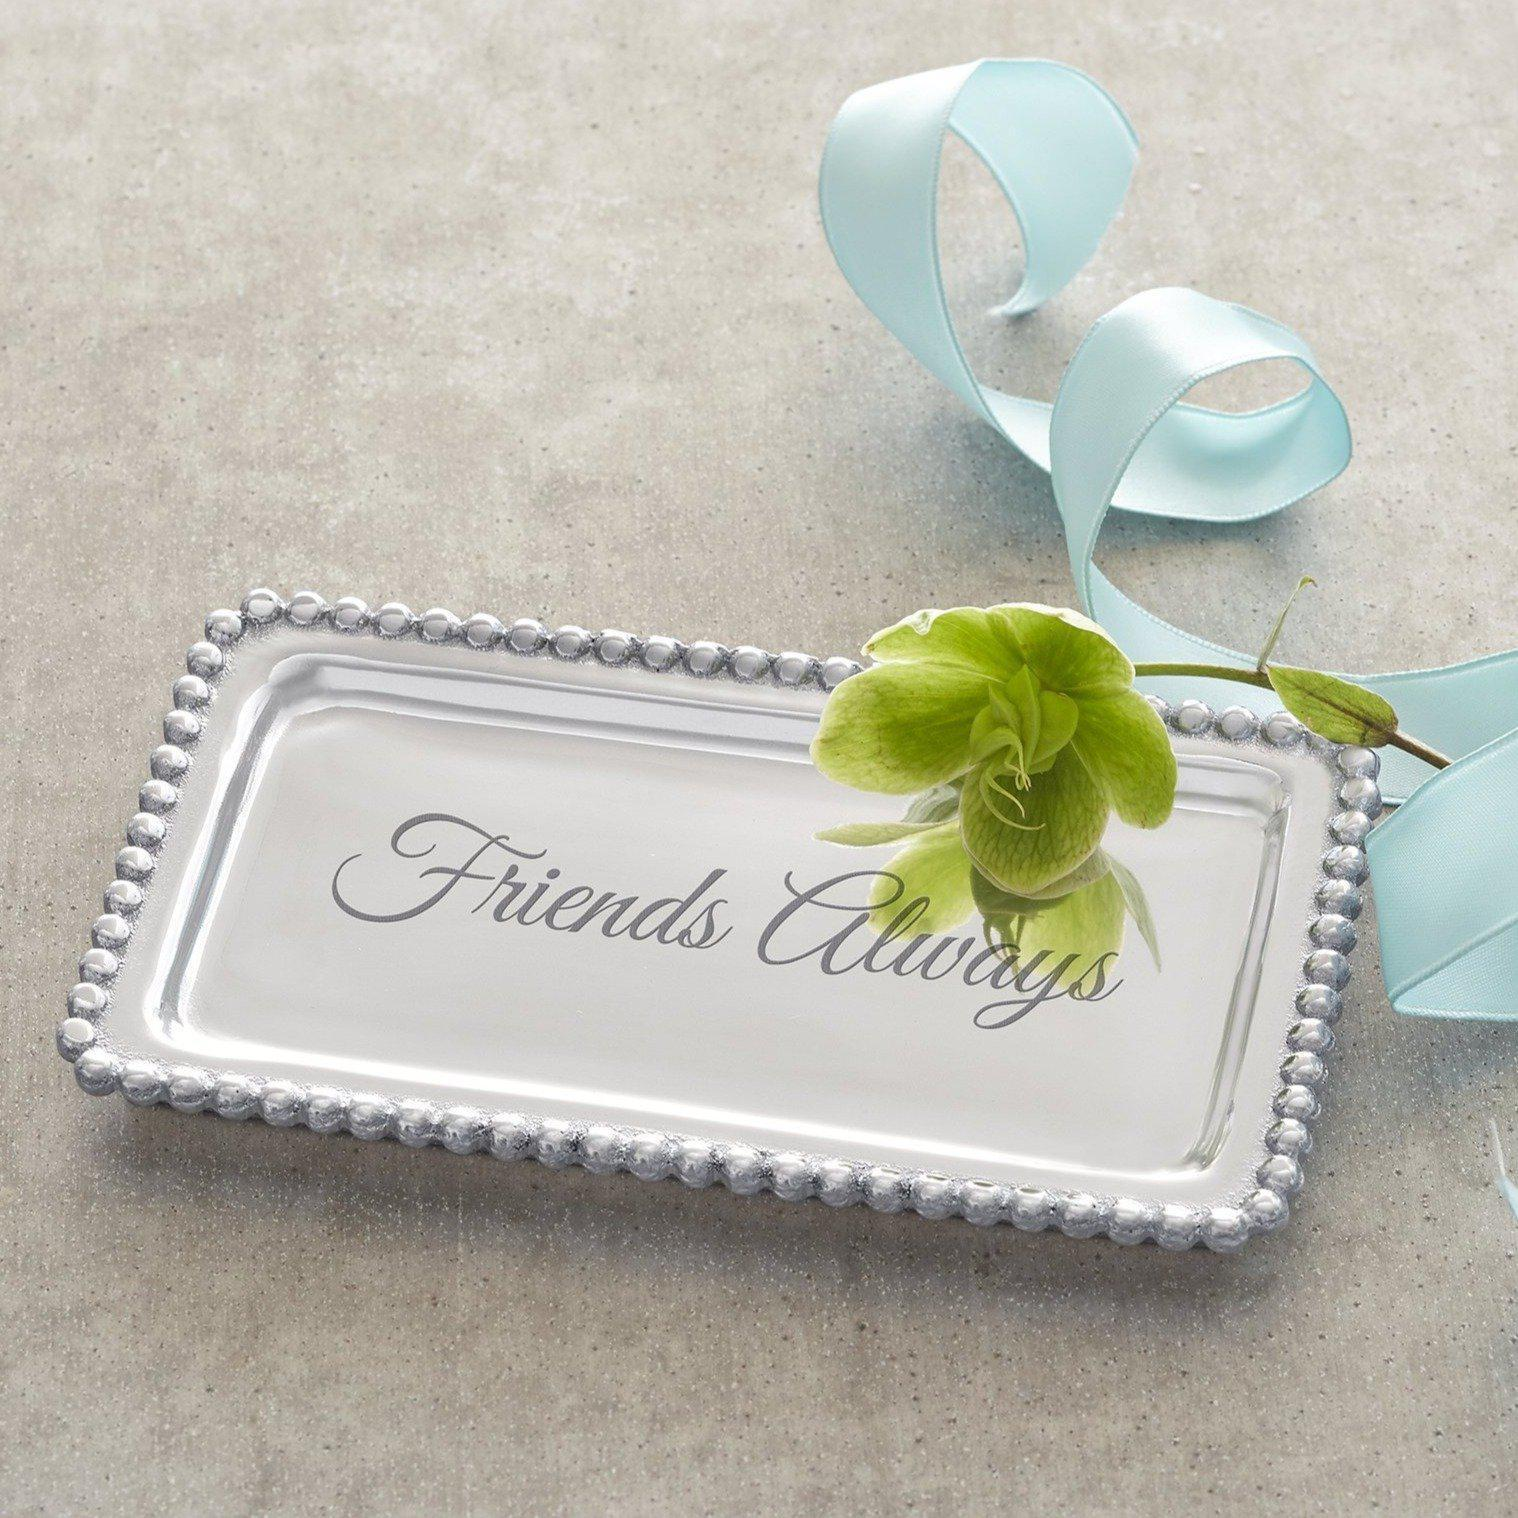 Mariposa - FRIENDS ALWAYS Beaded Statement Tray